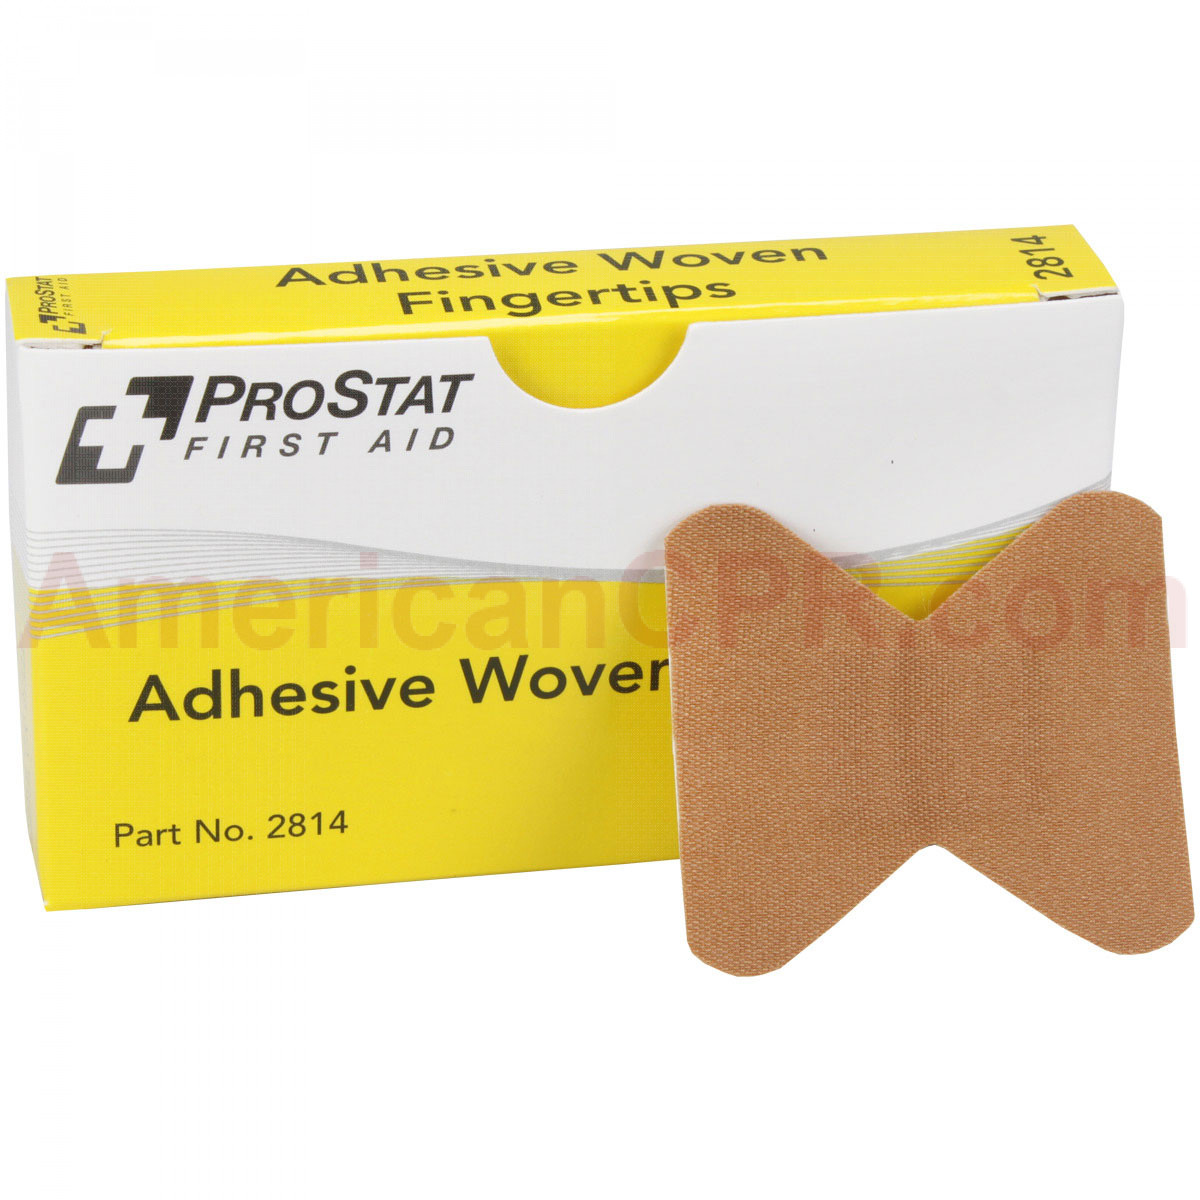 Fingertip Adhesive Bandages, Woven, 8 per box, Prostat First Aid